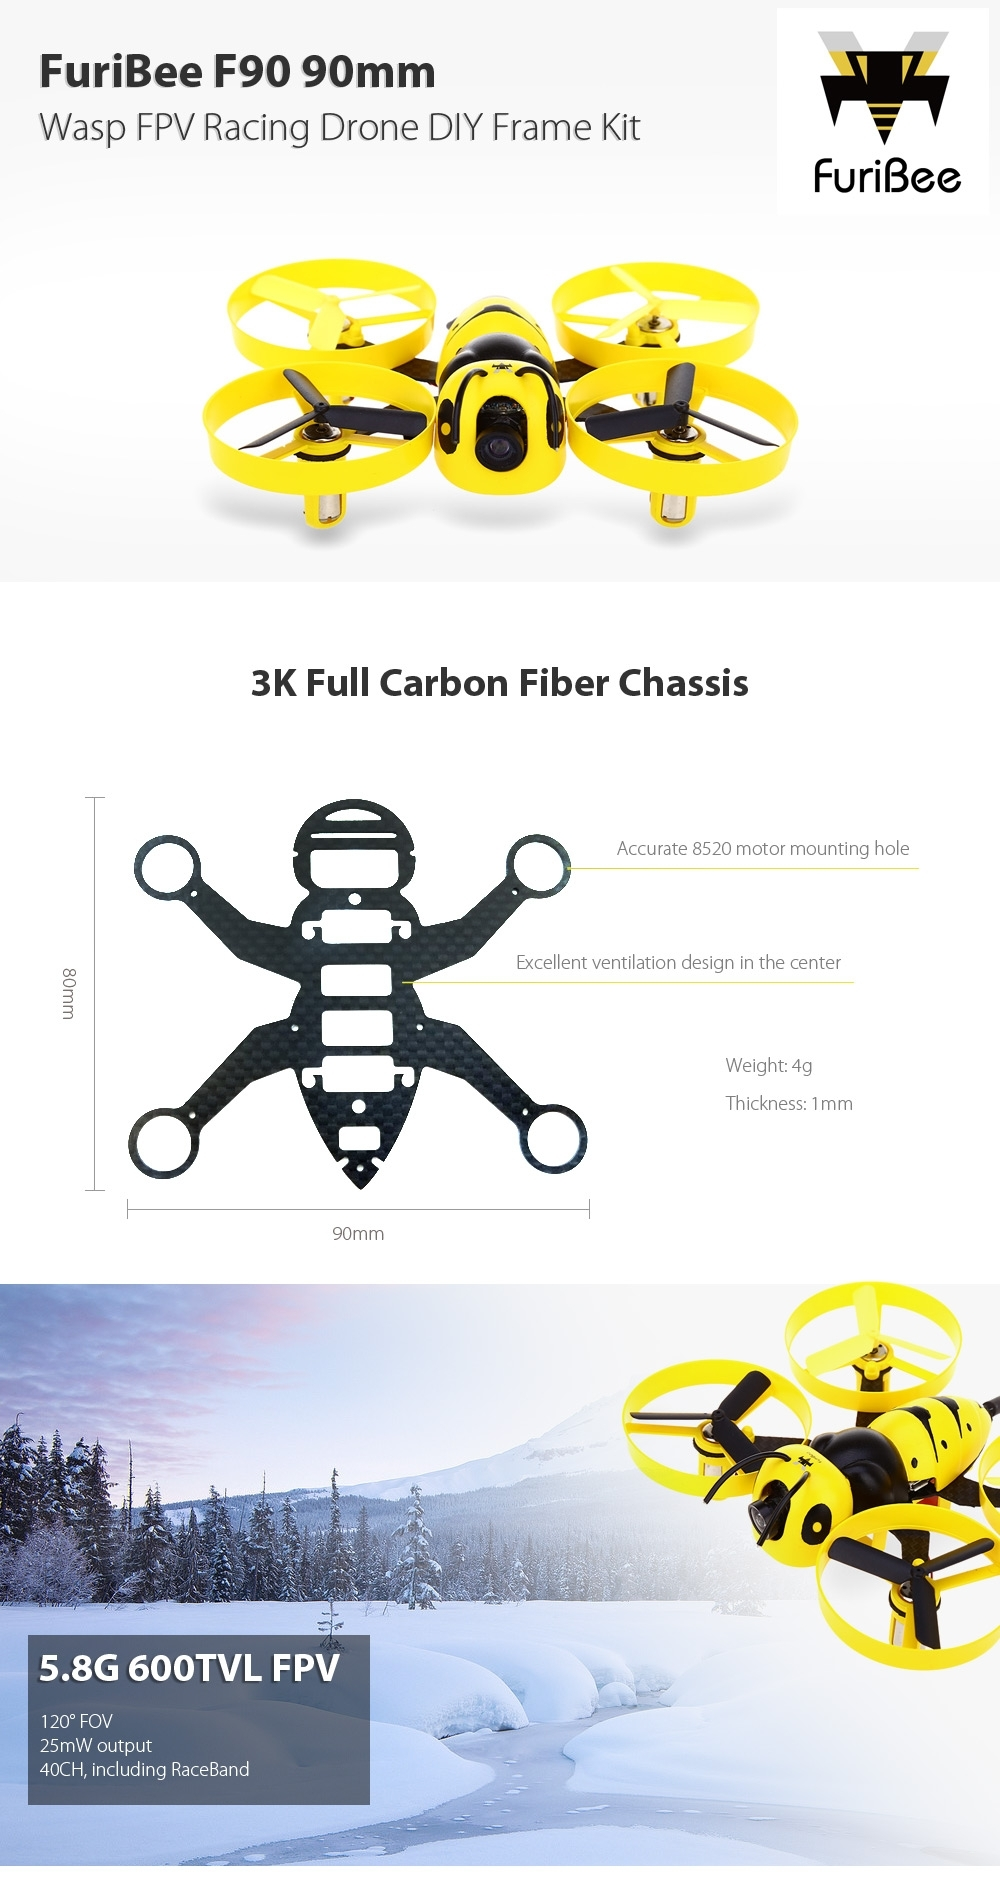 FuriBee F90 90mm Wasp FPV Racing Drone DIY Frame Kit 5.8G 600TVL / F3 Brushed FC / FrSky XM 16CH Receiver